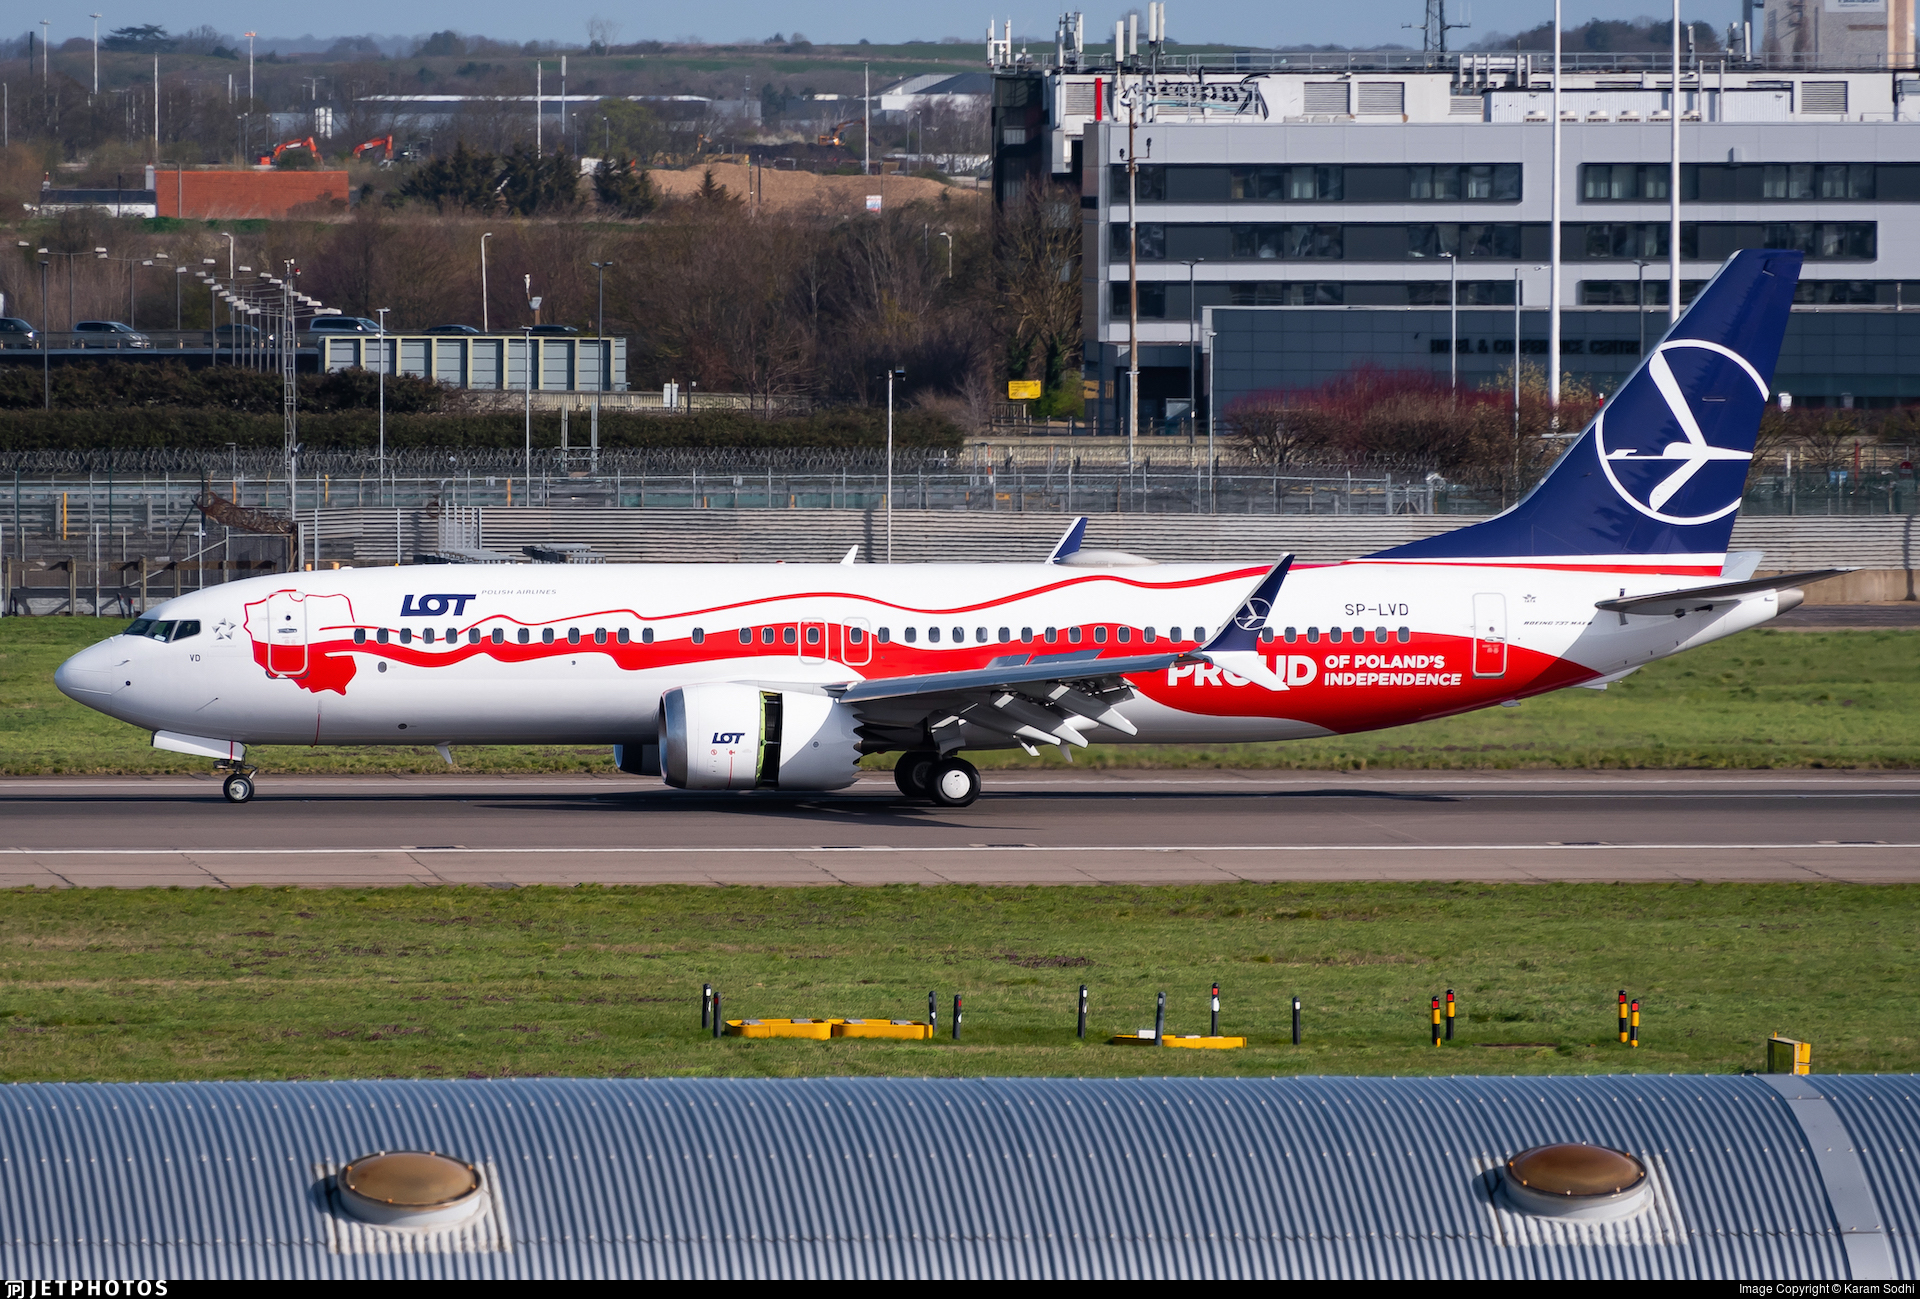 SP-LVD - Boeing 737-8 MAX - LOT Polish Airlines